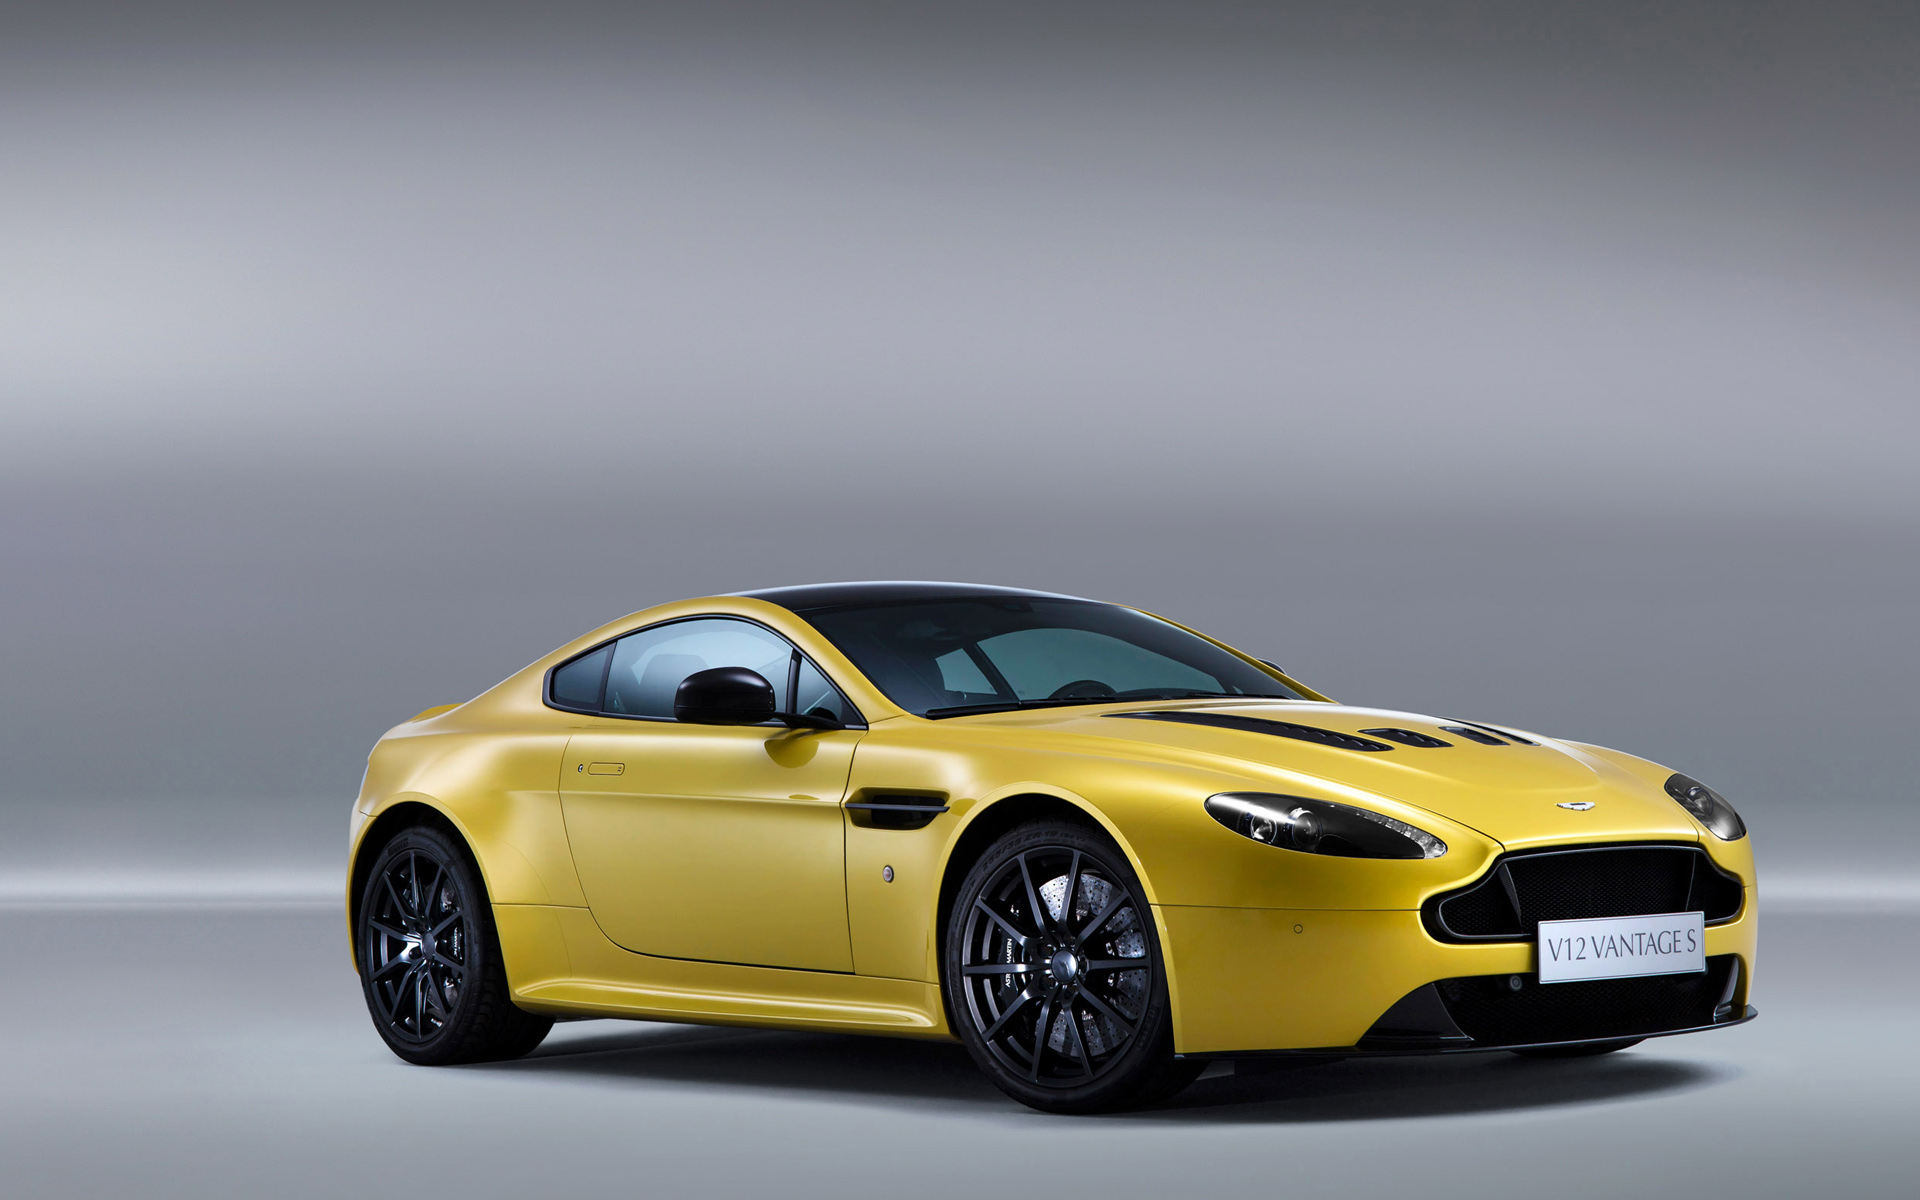 Aston Martin v12 Vantage S 2014 Wallpaper HD Car Wallpapers 1920x1200